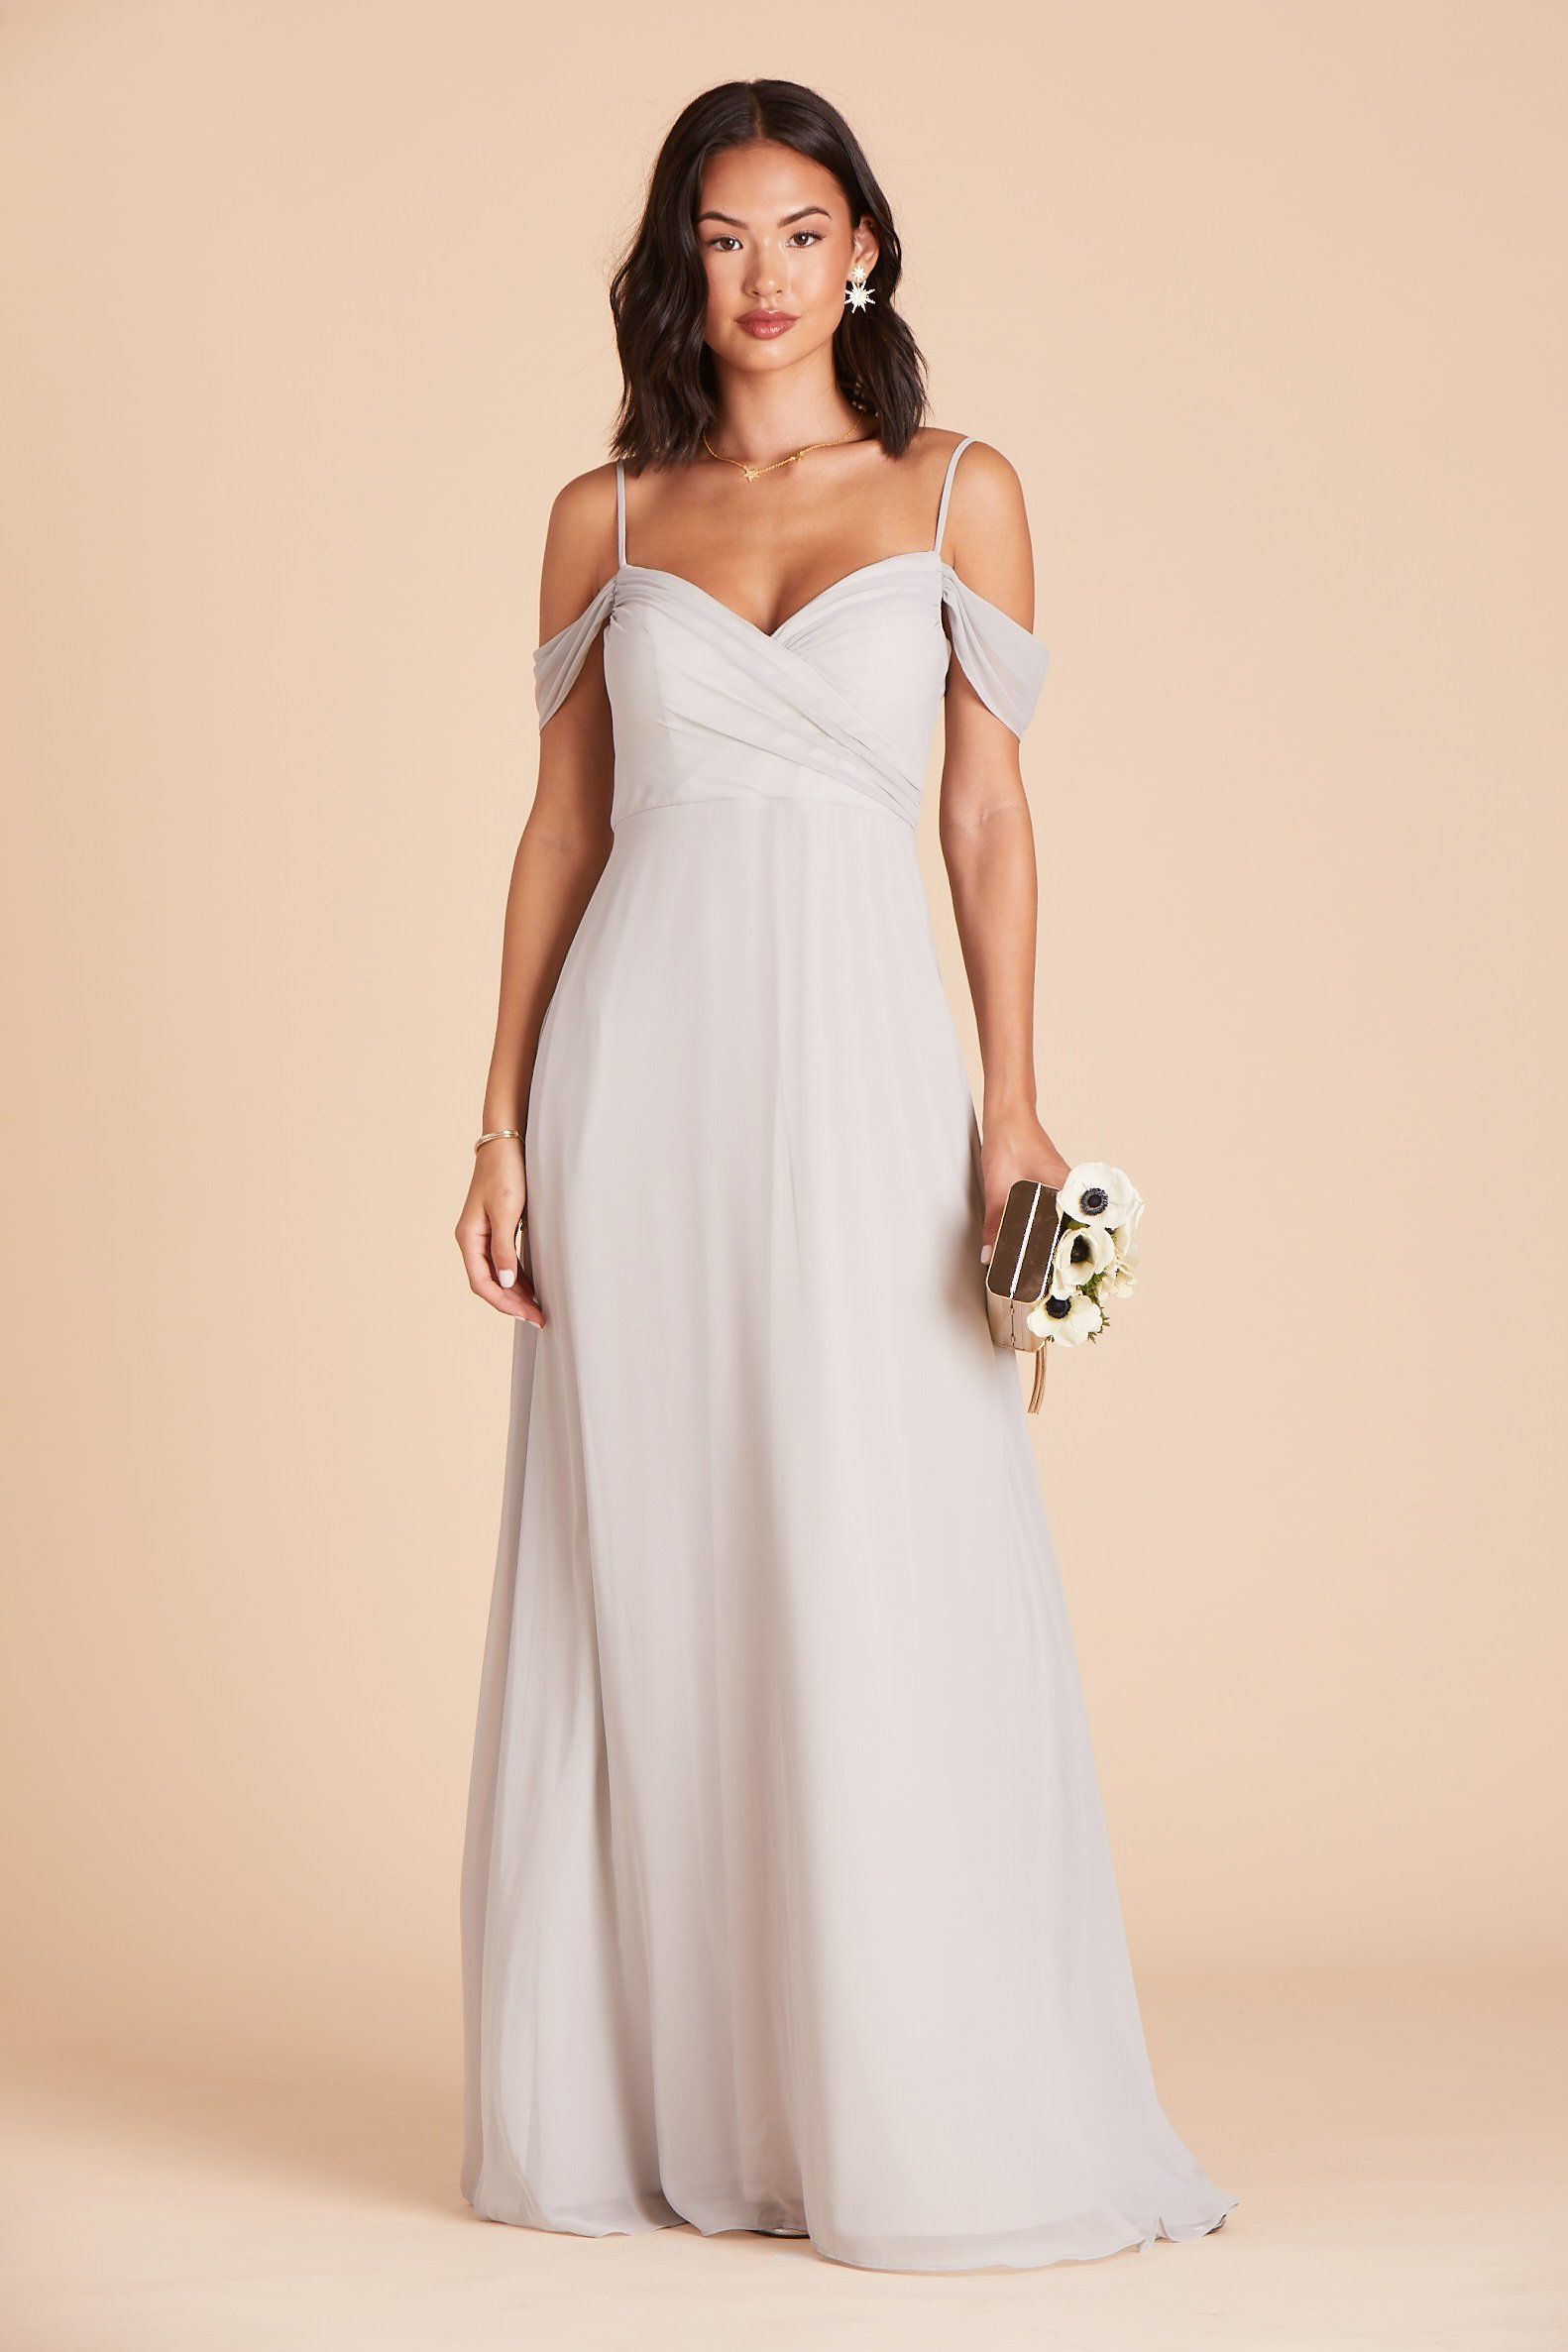 Spence Convertible Dress Dove Gray in 2020 Dresses